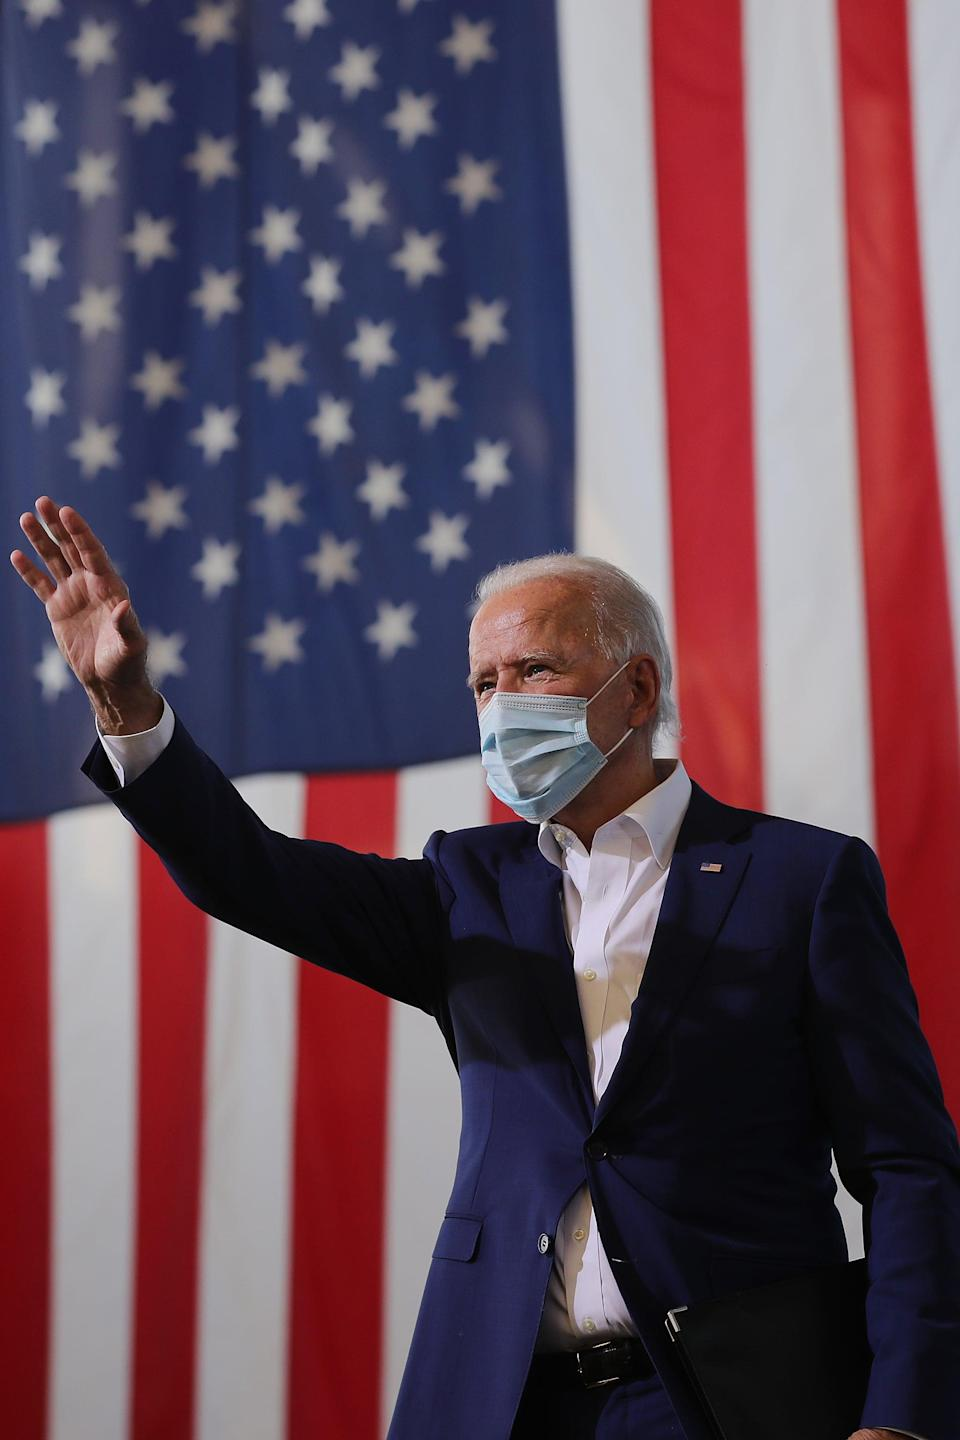 MIRAMAR, FLORIDA - OCTOBER 13: Wearing a face mask to reduce the risk posed by the coronavirus, Democratic presidential nominee Joe Biden waves to supporters during a drive-in voter mobilization event at Miramar Regional Park October 13, 2020 in Miramar, Florida. With three weeks until Election Day, Biden is campaigning in Florida. (Photo by Chip Somodevilla/Getty Images)